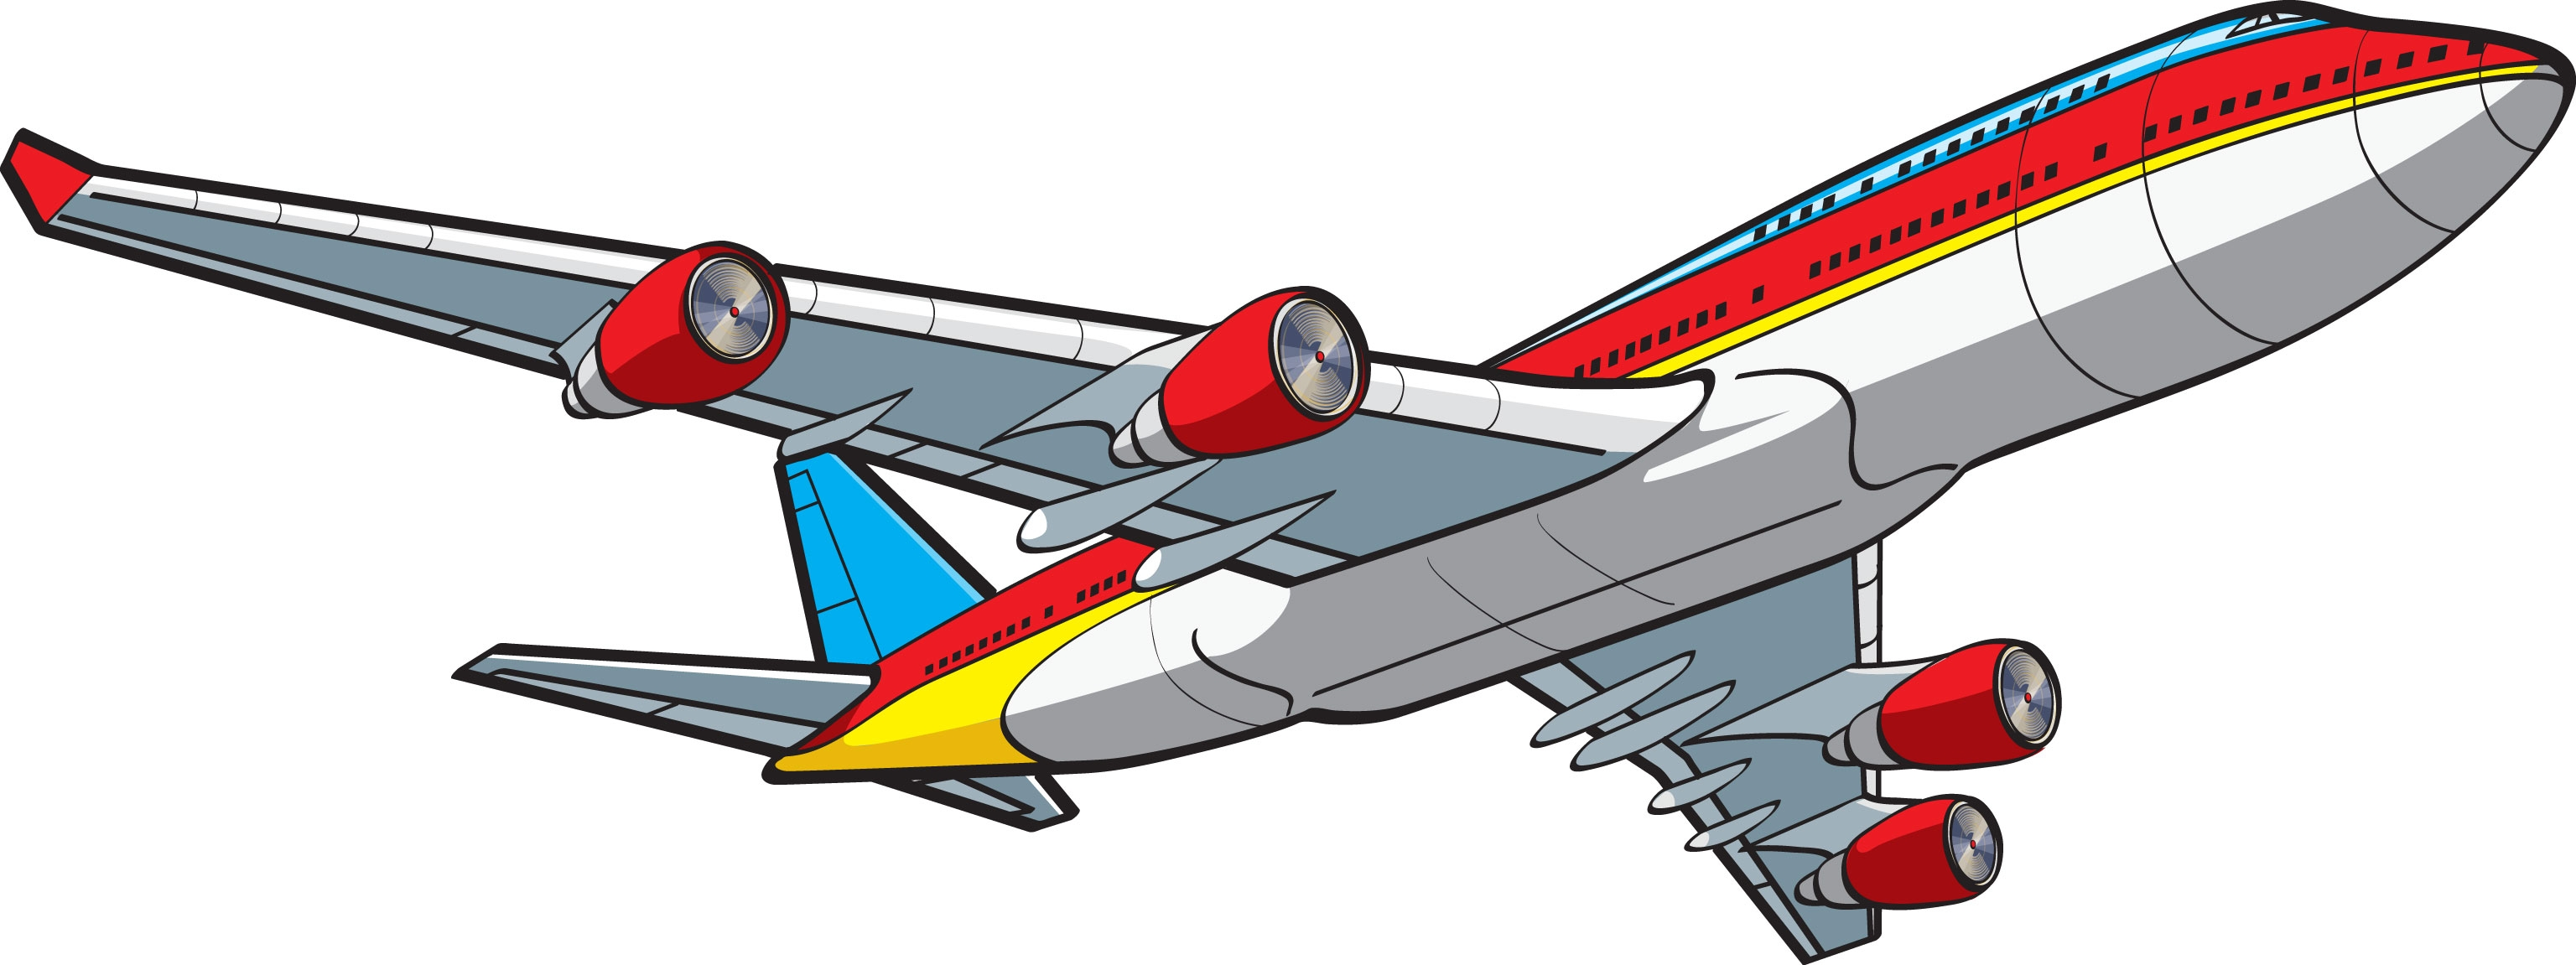 Jet airplane flying clipart